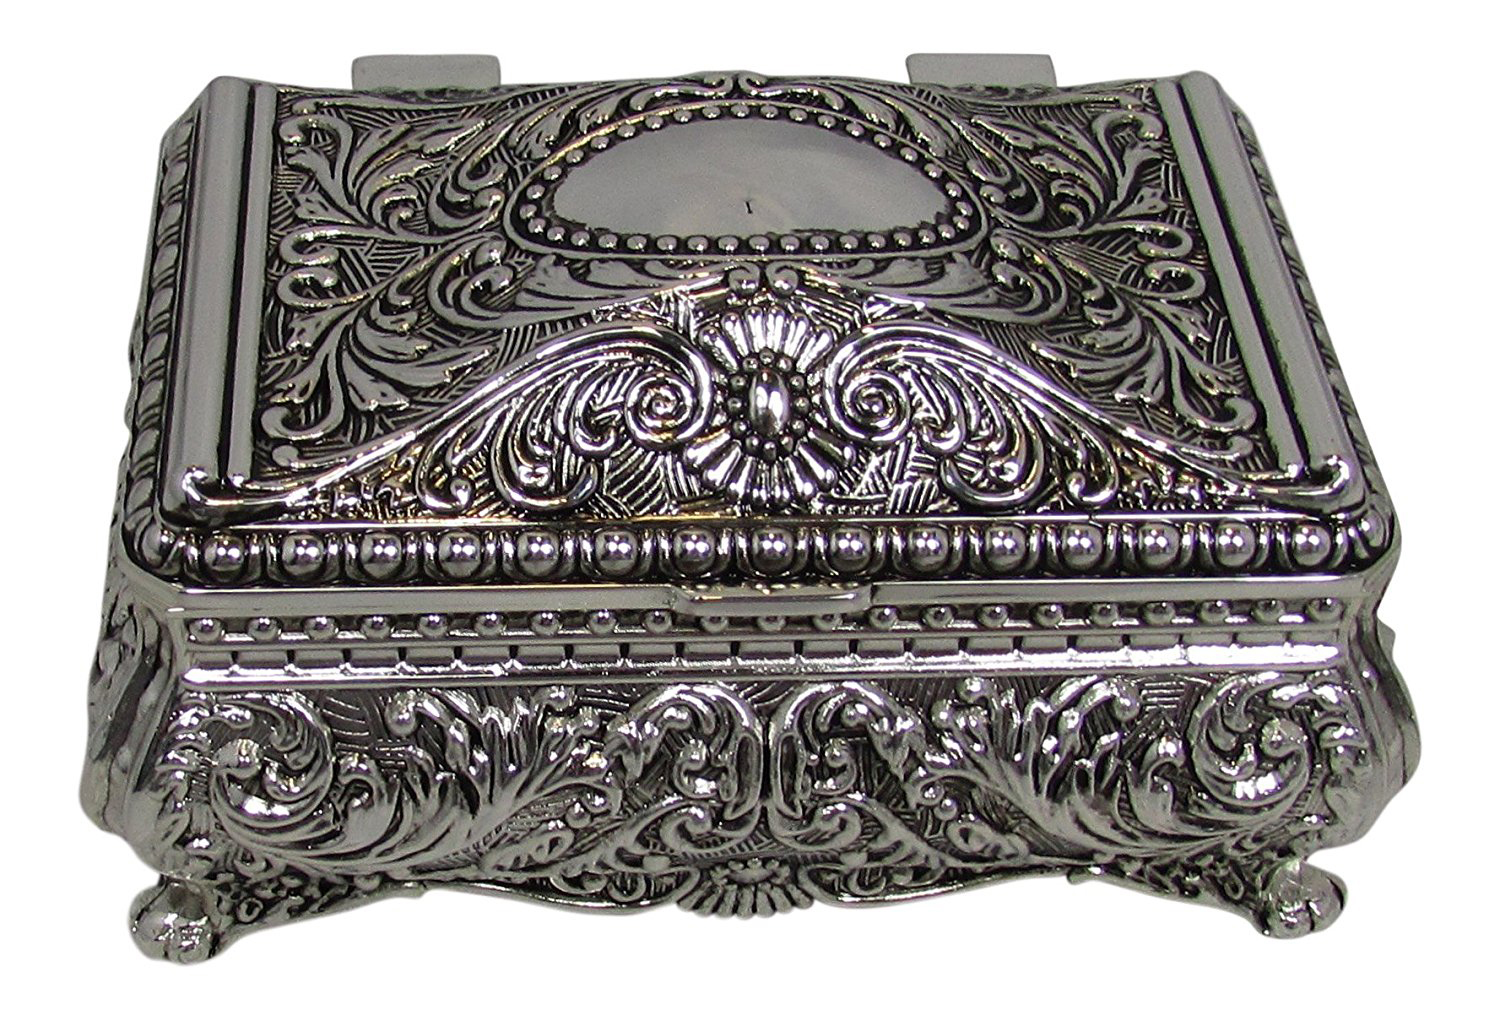 Vintage Intricate Silver Design Small Jewelry Box